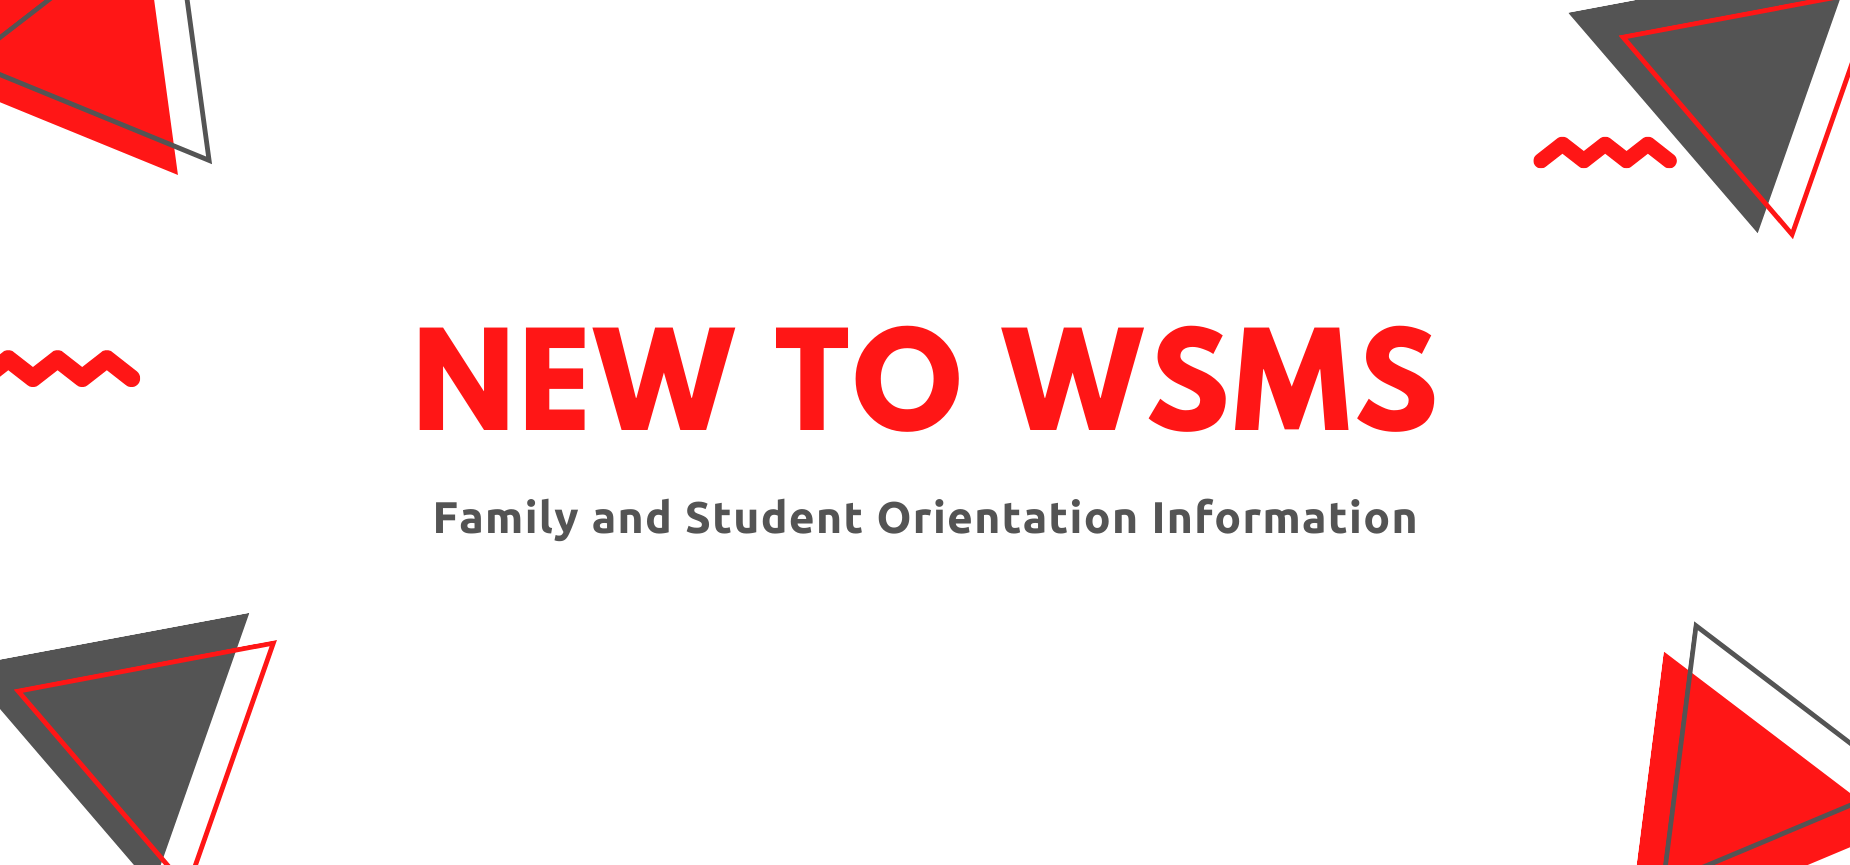 New to WSMS information on a multicolored background